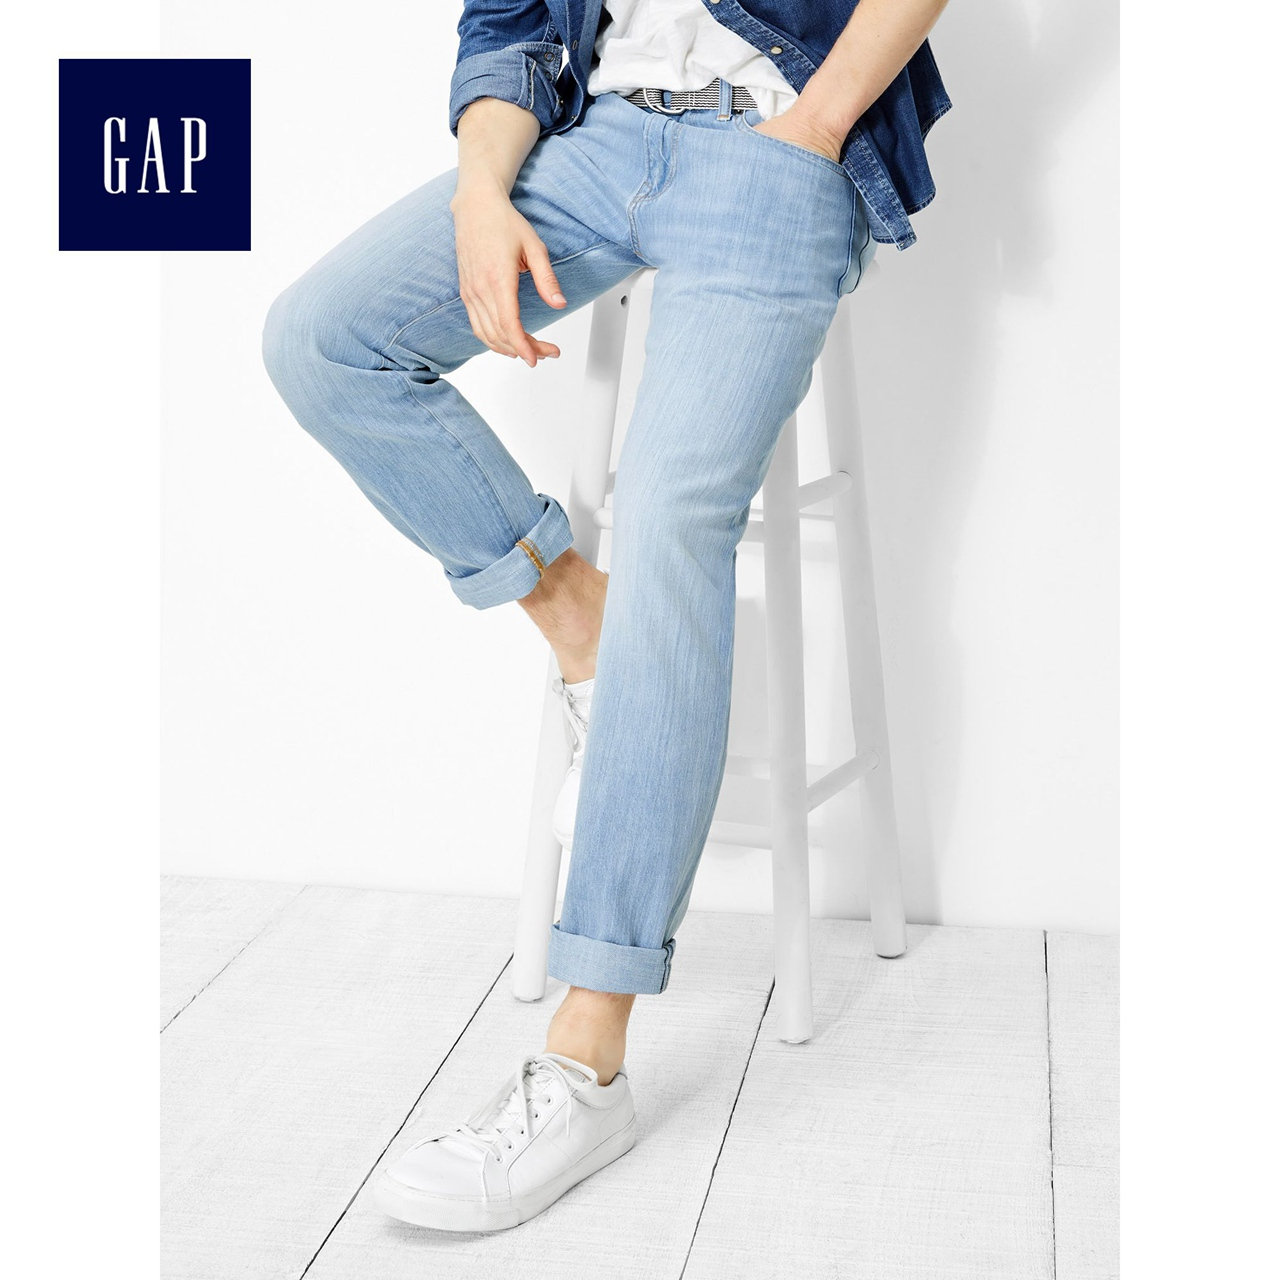 Gap men's comfortable lightweight stretch straight jeans 723416